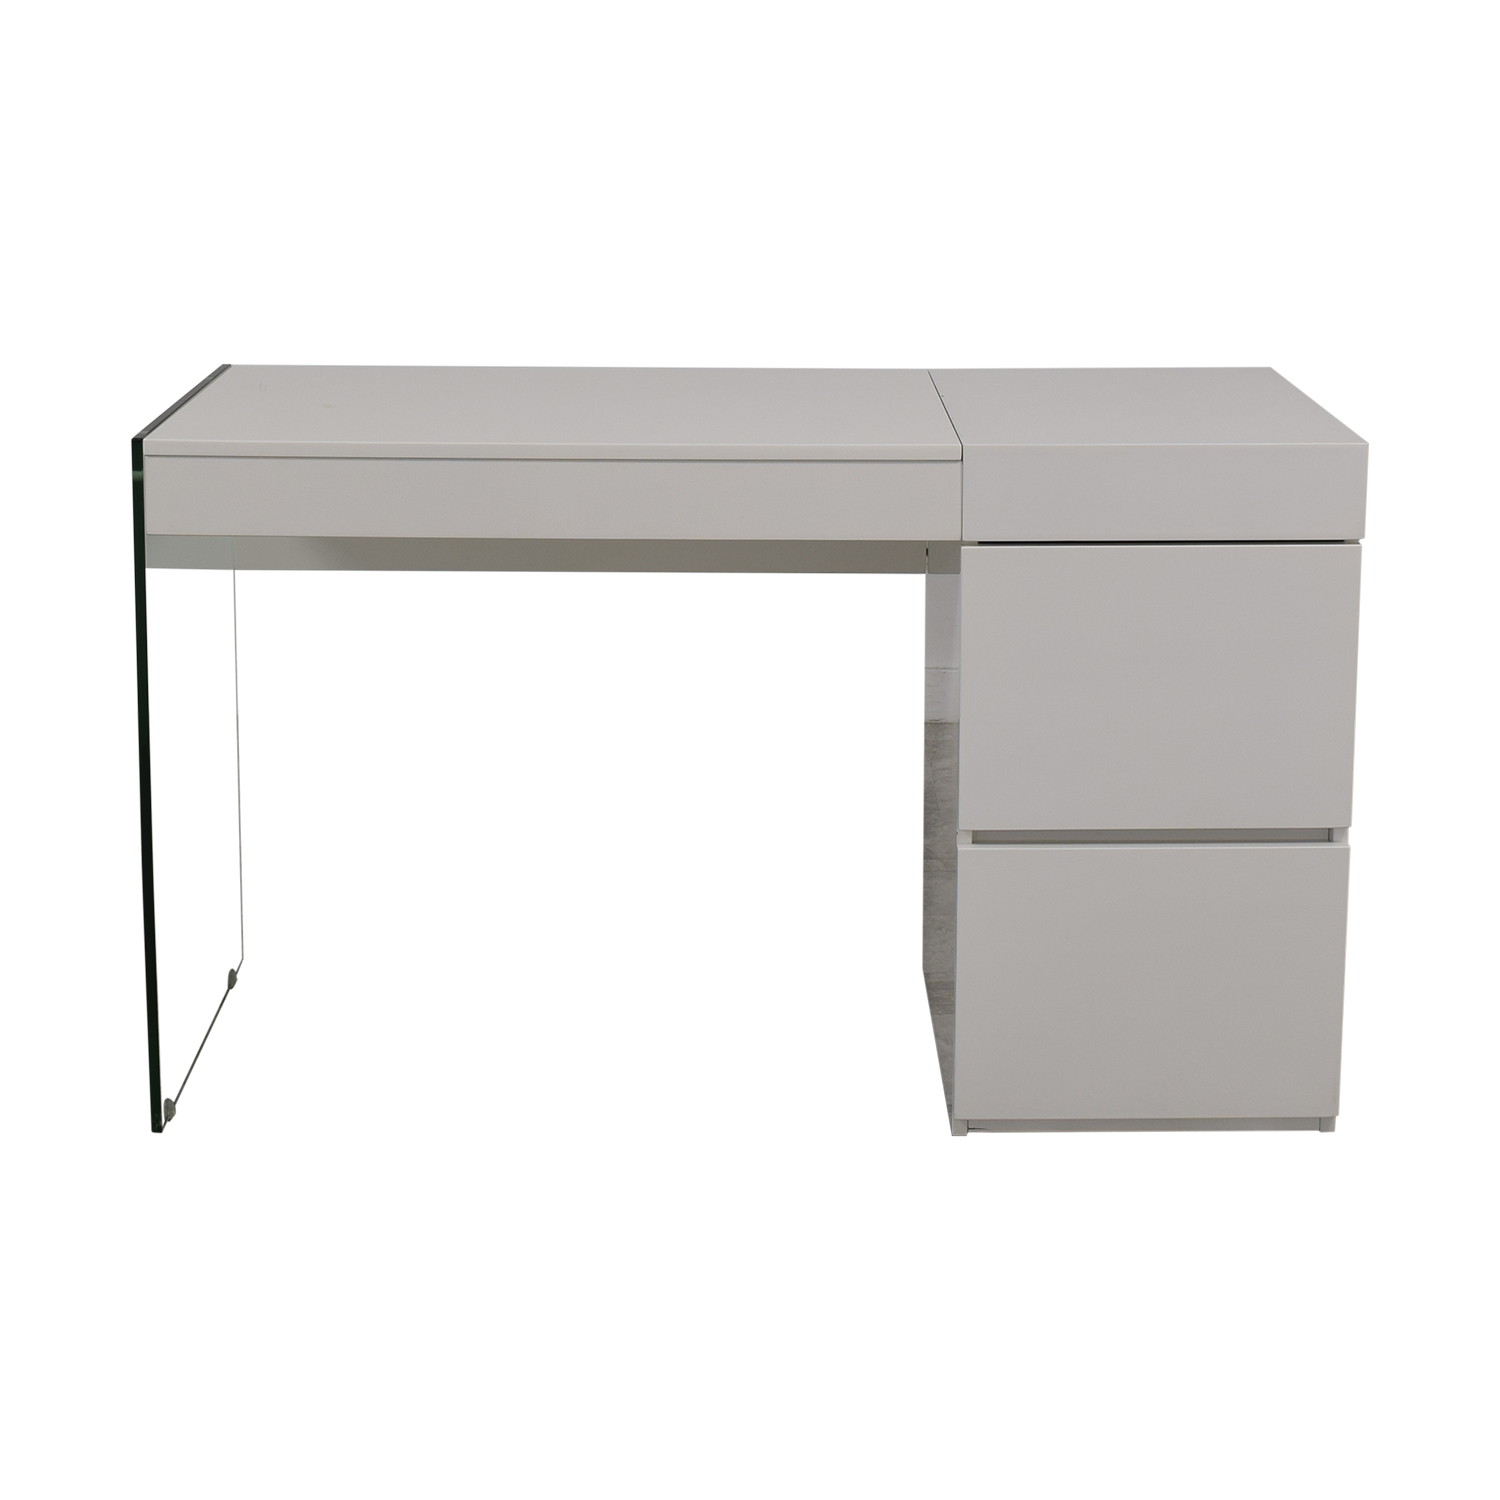 AllModern AllModern Casabianca Furniture II Vetro Vanity Desk nyc